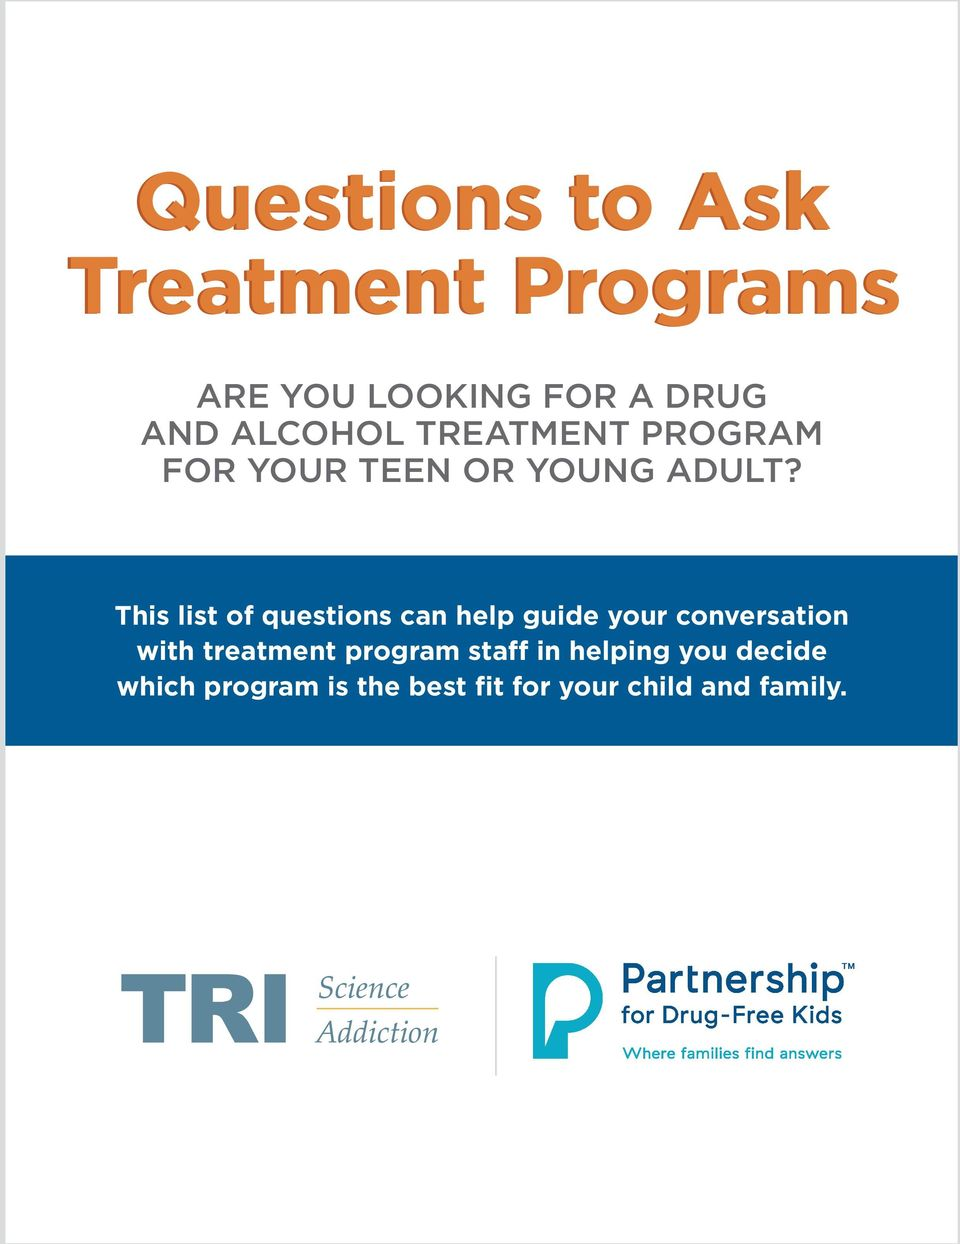 This list of questions can help guide your conversation with treatment